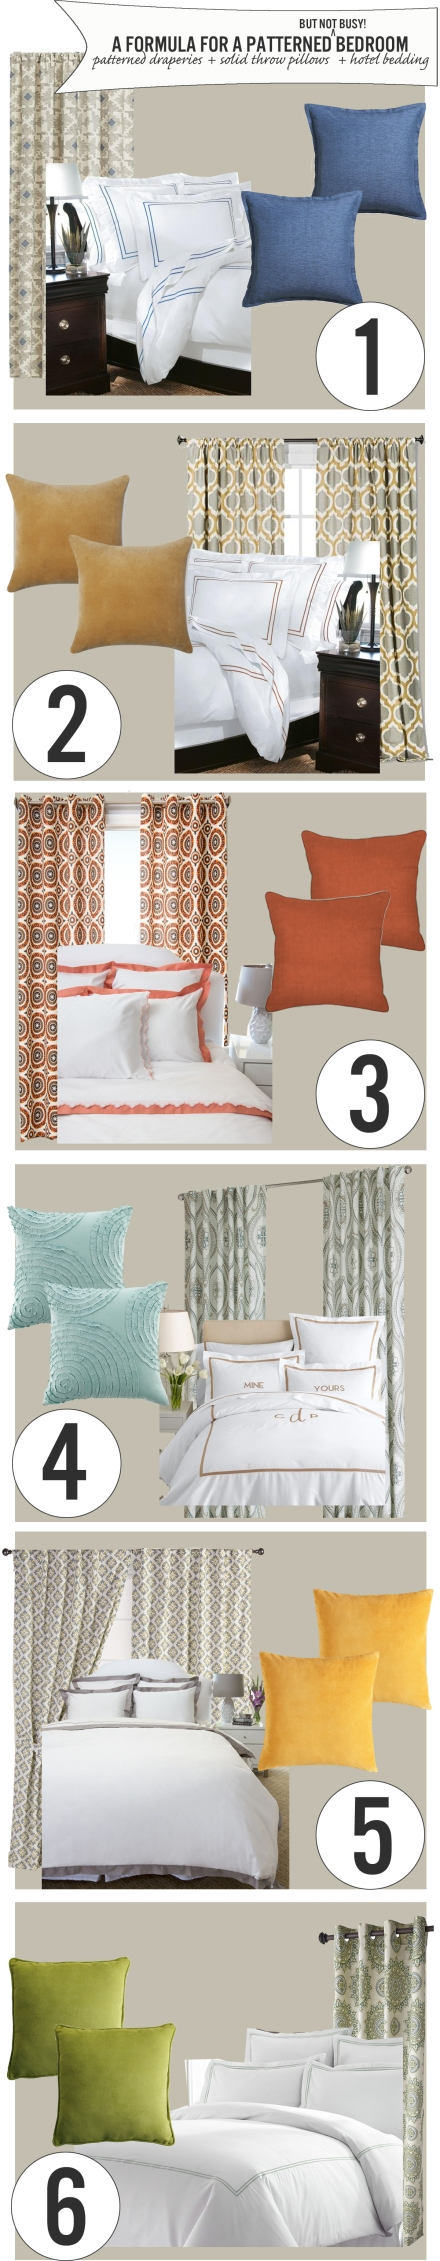 A Formula for a Patterned Bedroom | www.theanatomyofdesign.com